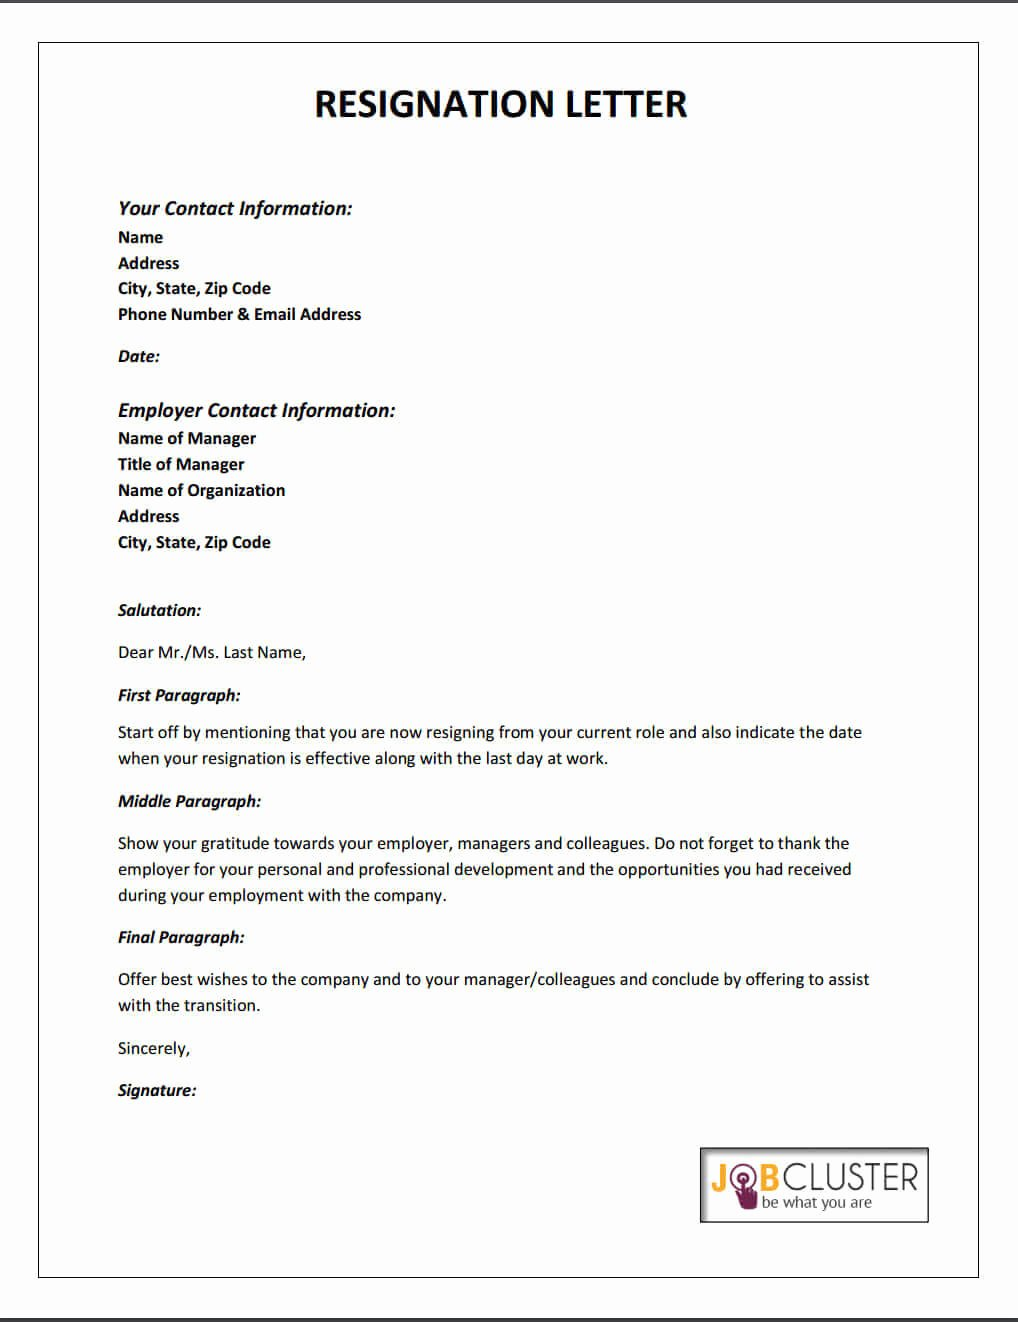 Letter Of Resignation From Job Inspirational Writing A Resignation Letter